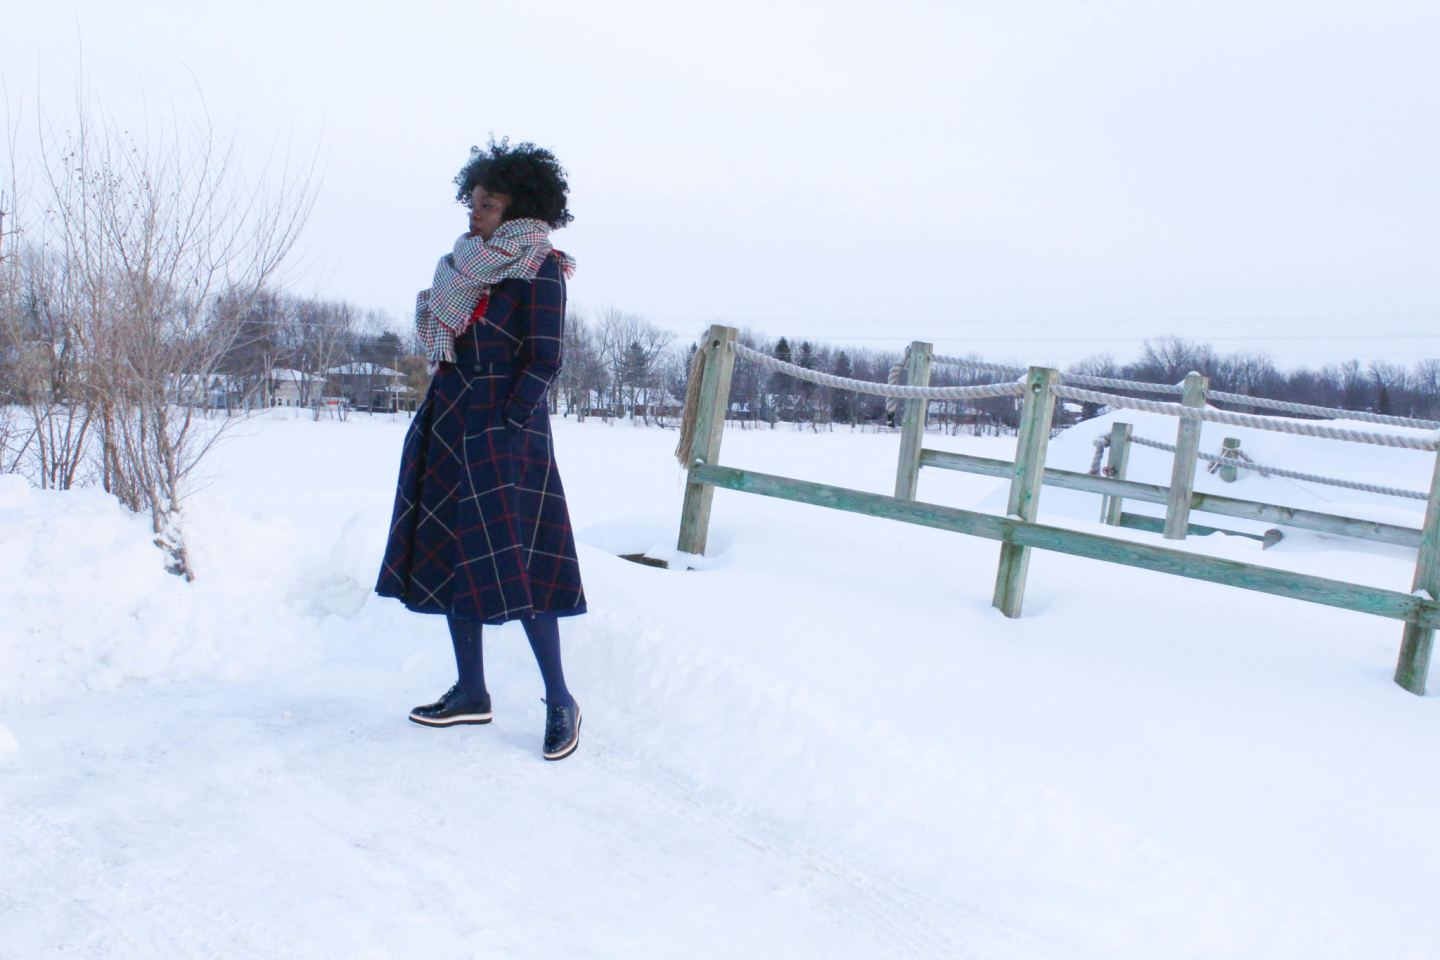 DIY Tweed Dress with blanket scarf in the snow -YesIMadeMyDress.com